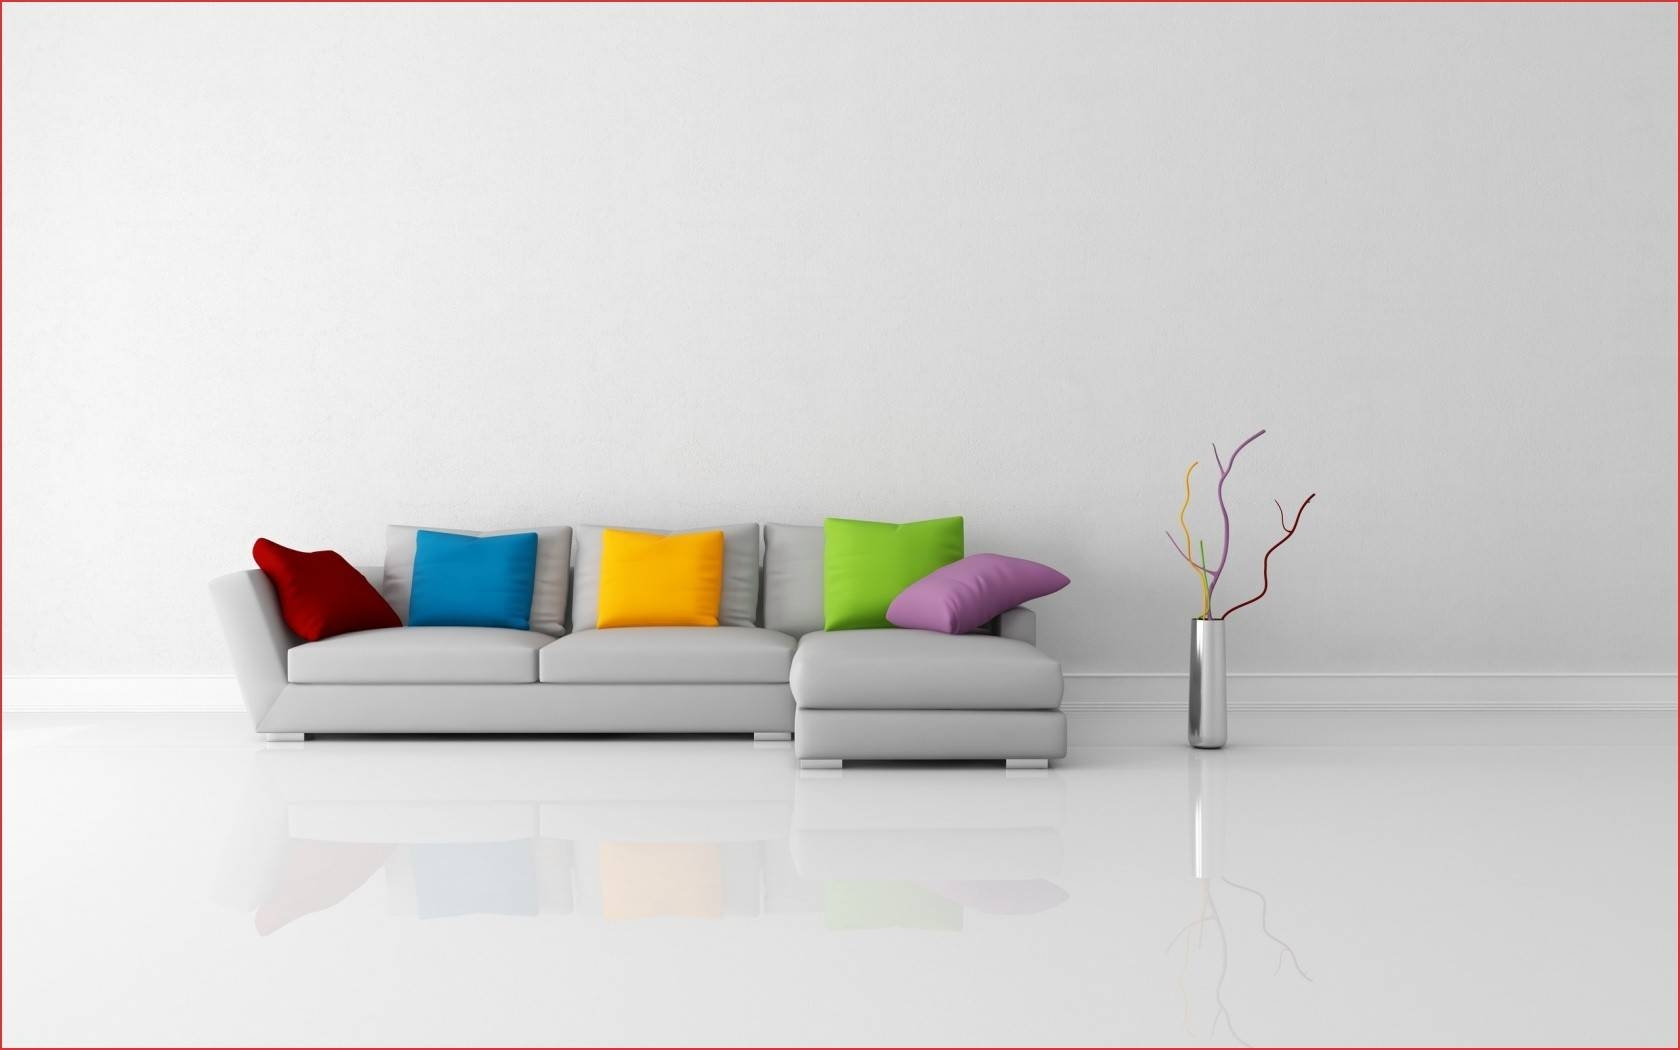 Colorful Sofas And Chairs Inspirational Modular Sectional Sofa inside Colorful Sofas and Chairs (Image 11 of 15)